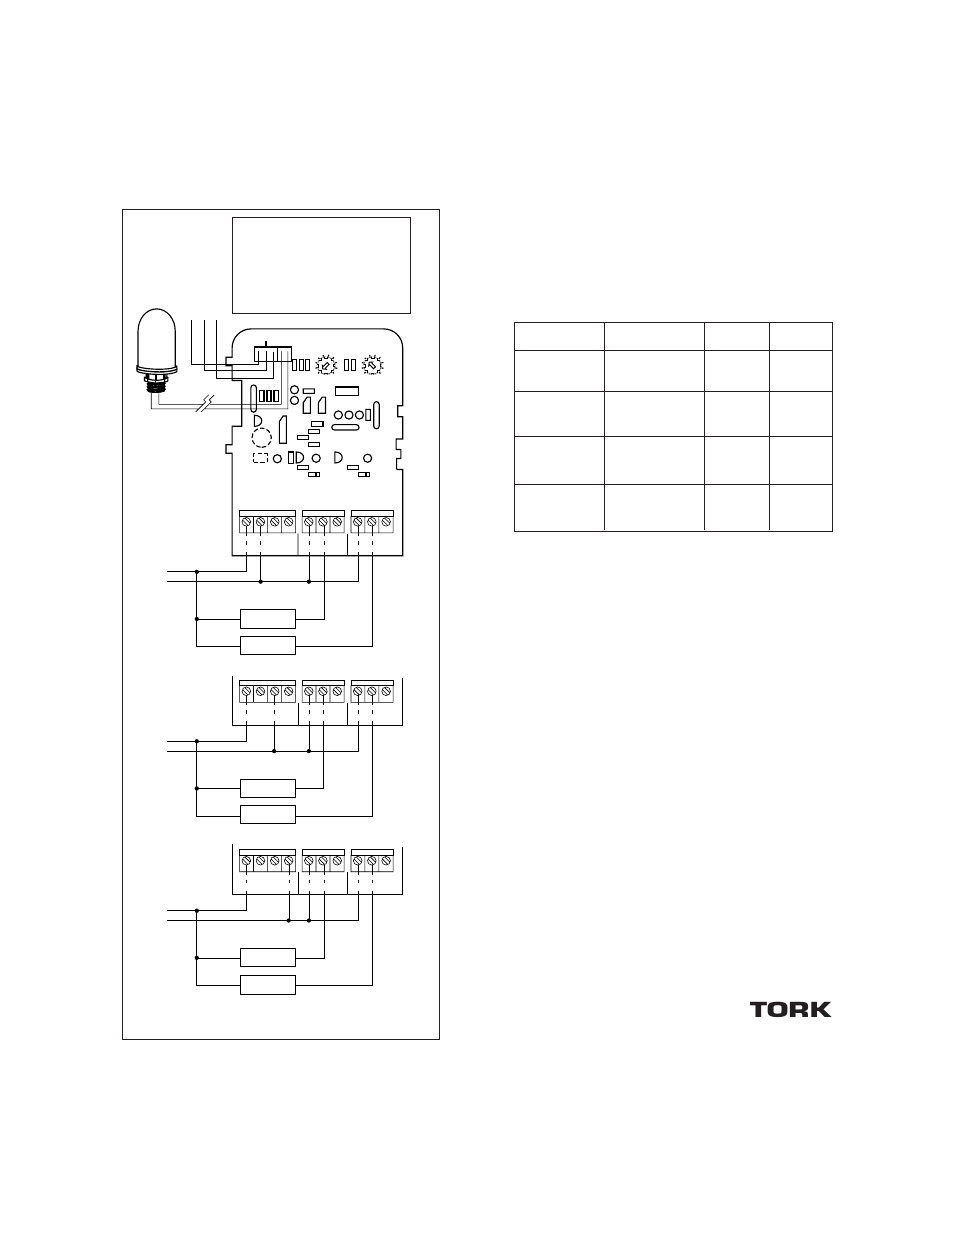 Tork Wiring Diagrams Electrical Ratings Nsi Industries Lc200 Photocell 277vac User Manual Page 3 4